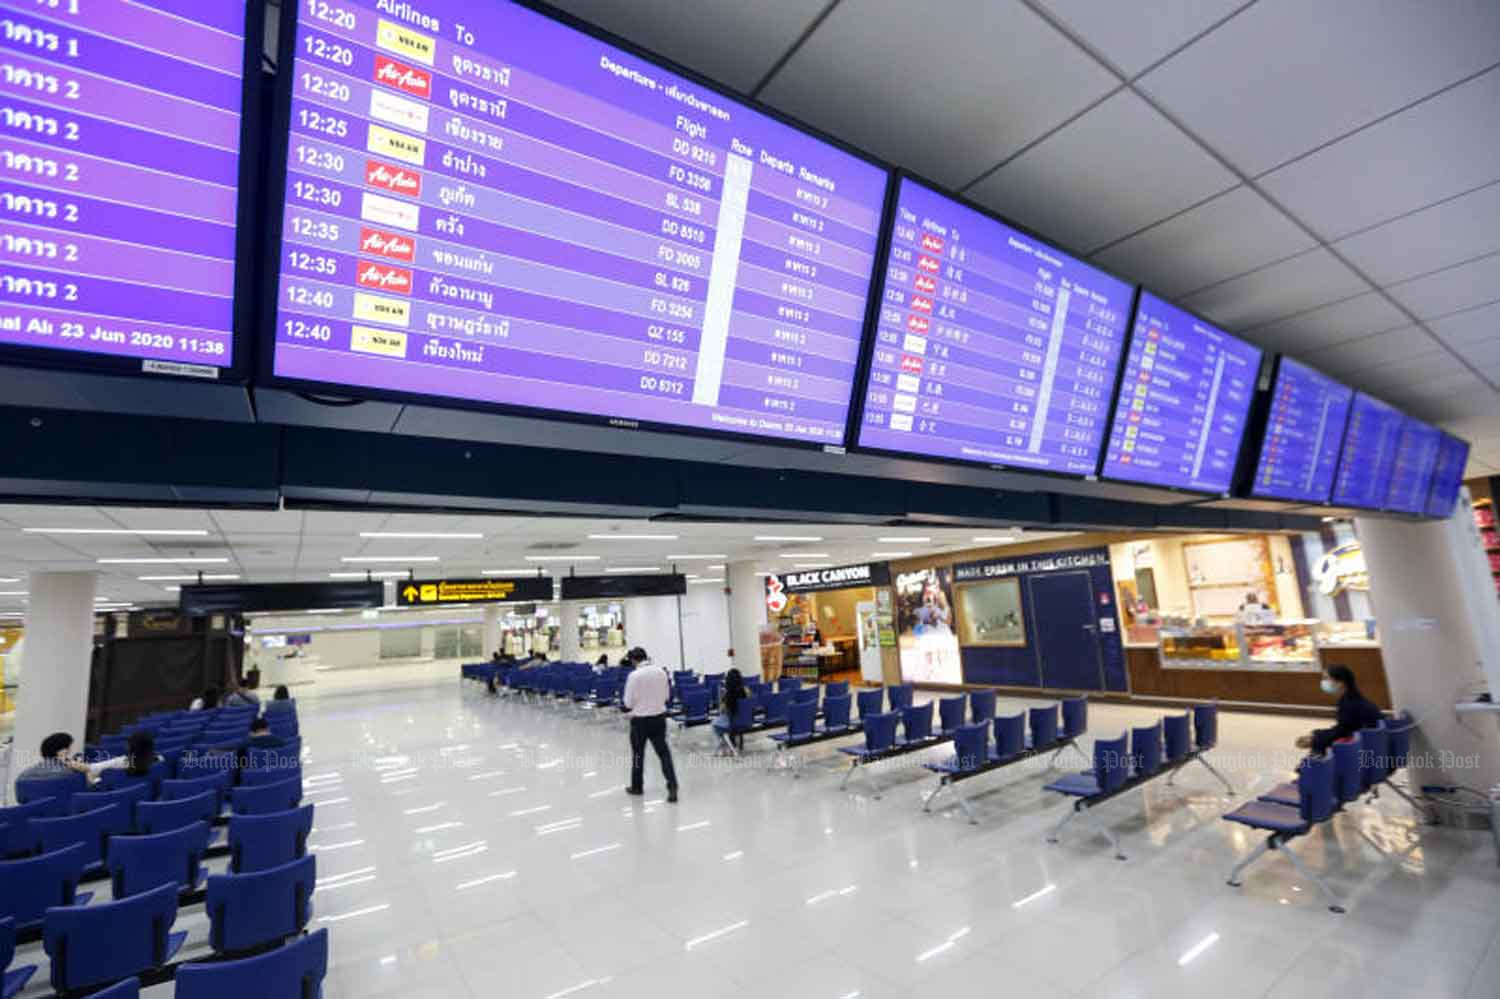 Bangkok's Don Mueang airport is virtually empty last month. China has temporarily banned two airlines after their chartered flights in transit from the airport carried Covid-19 infected passengers to Chinese cities over the past week. (Photo: Pattarapong Chatpattarasill)